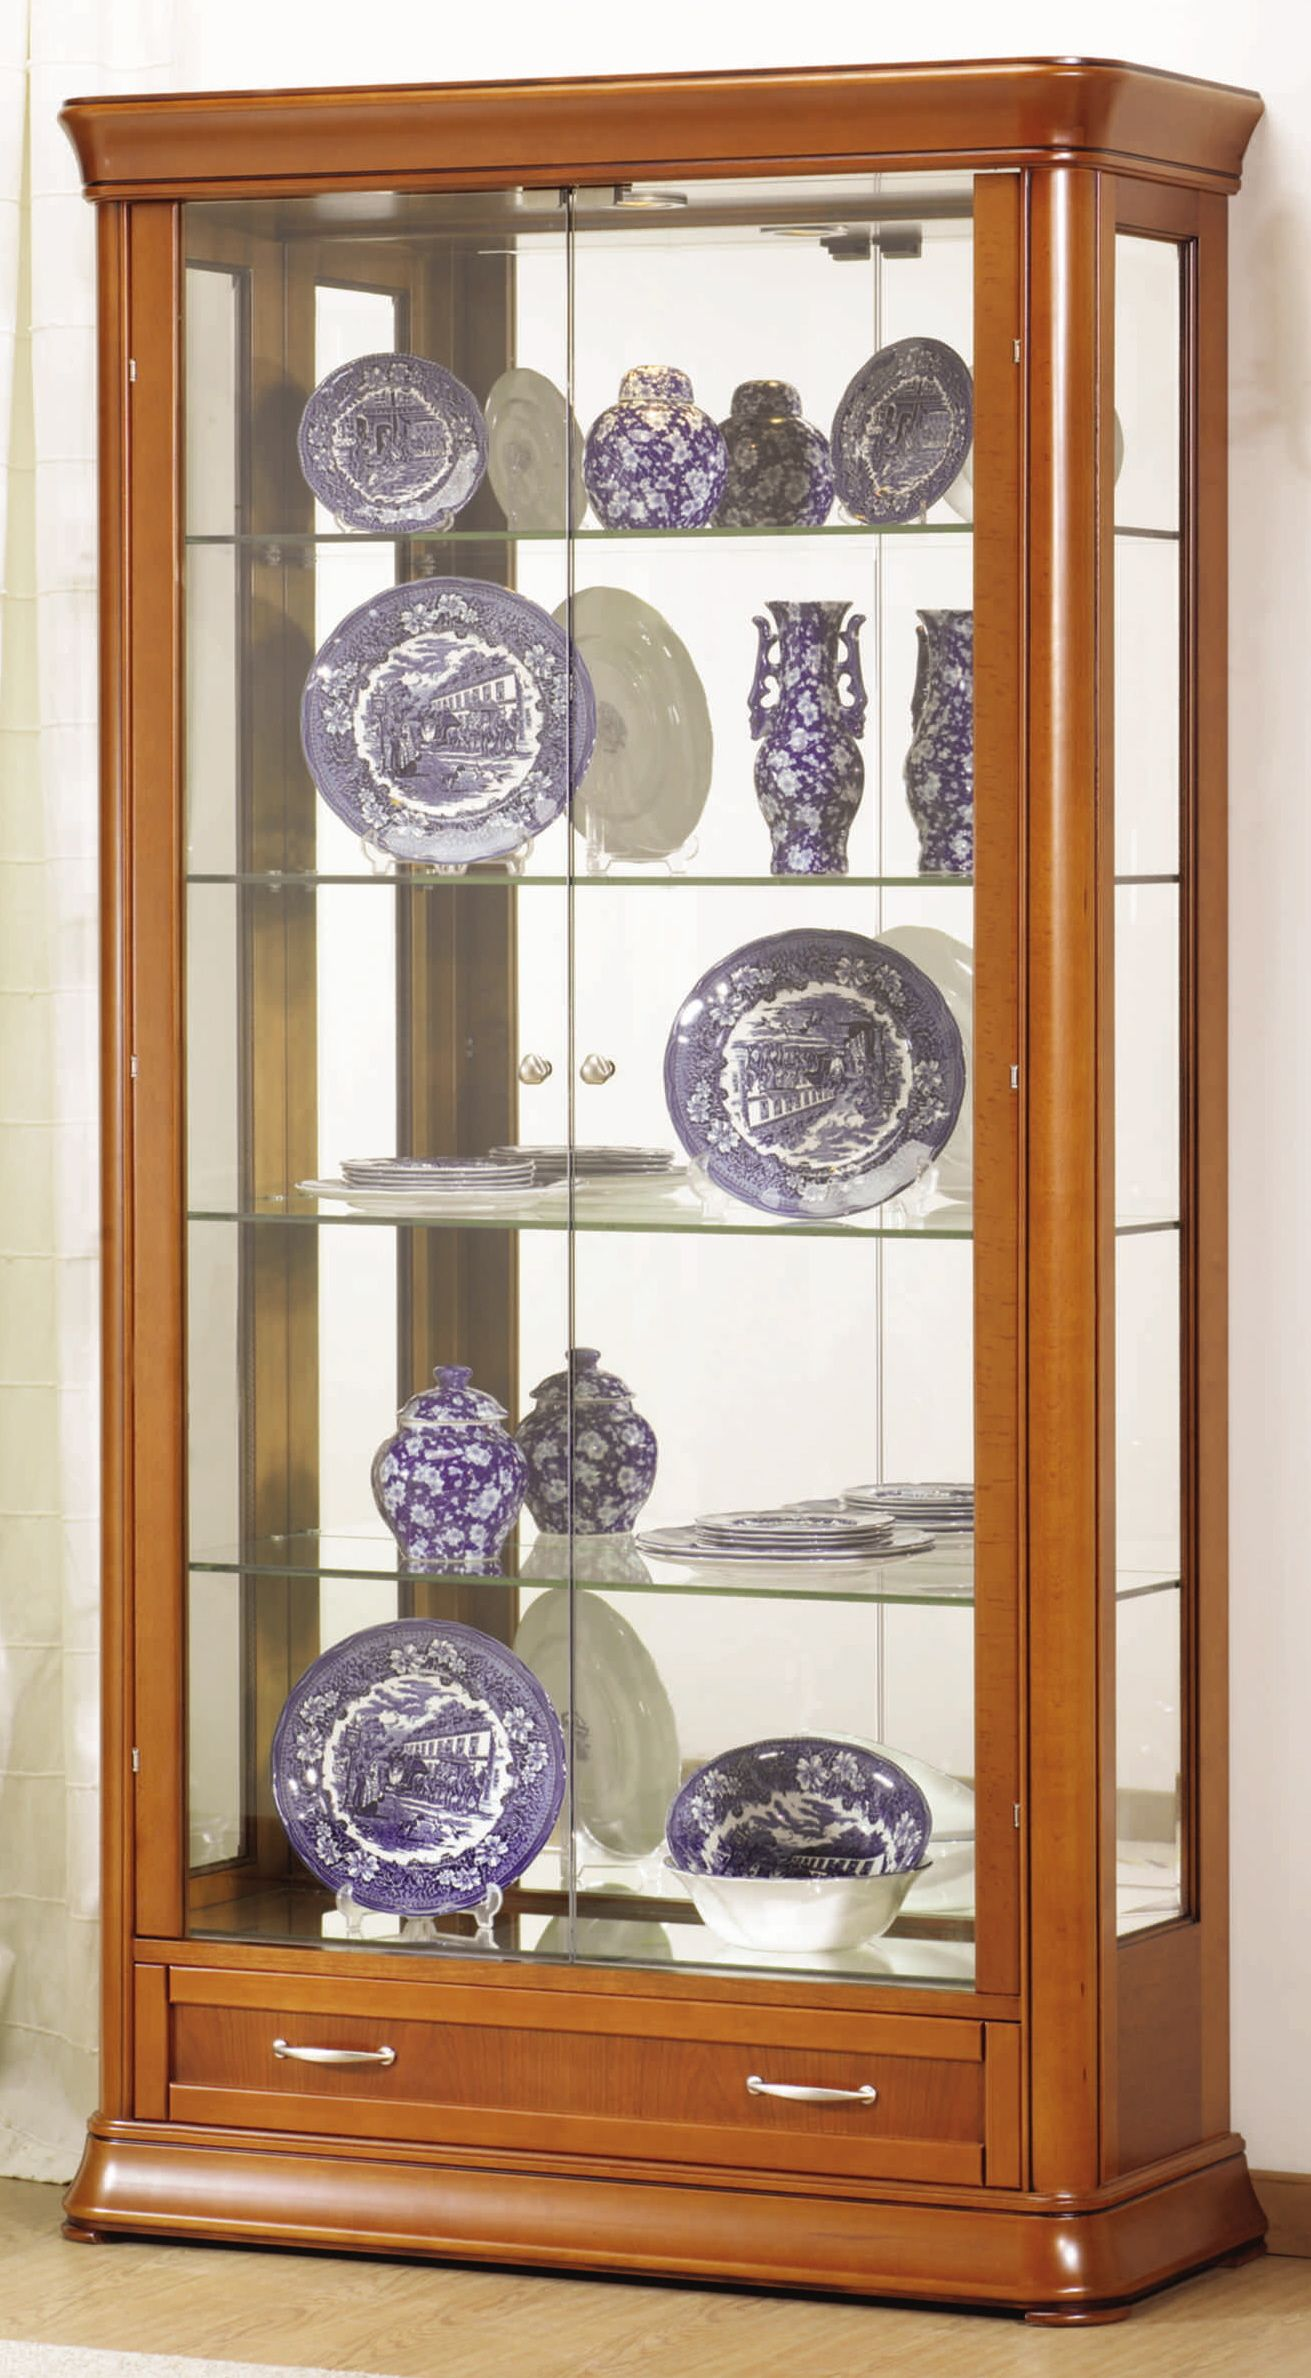 Buffet Vitrine, Armoire Buffet, Armoires, Wooden Display Cabinets, Closets